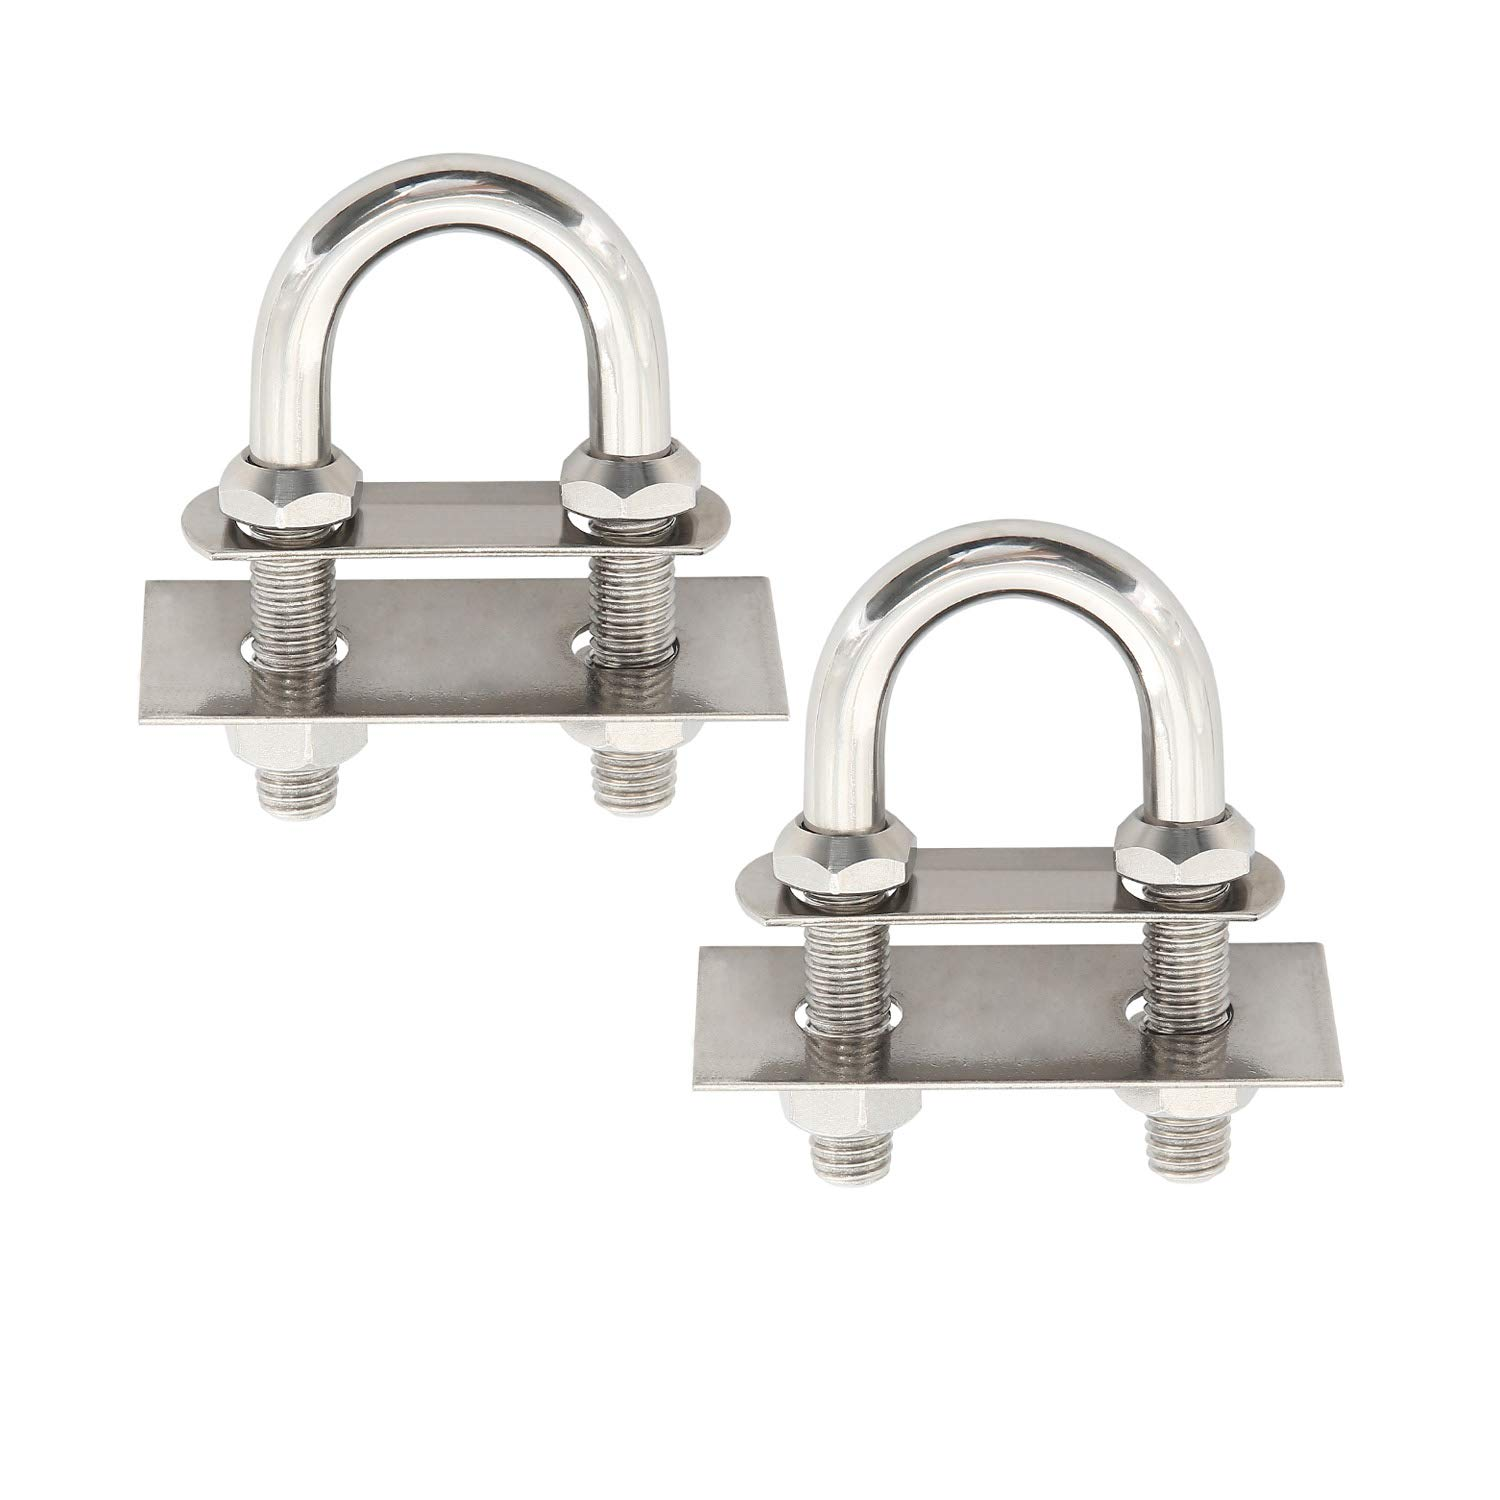 NovelBee 2-Pack of Stainless Steel Bow Stern Eye Tie Down U Bolt with Nuts and Washers,Stock Dia.1/2